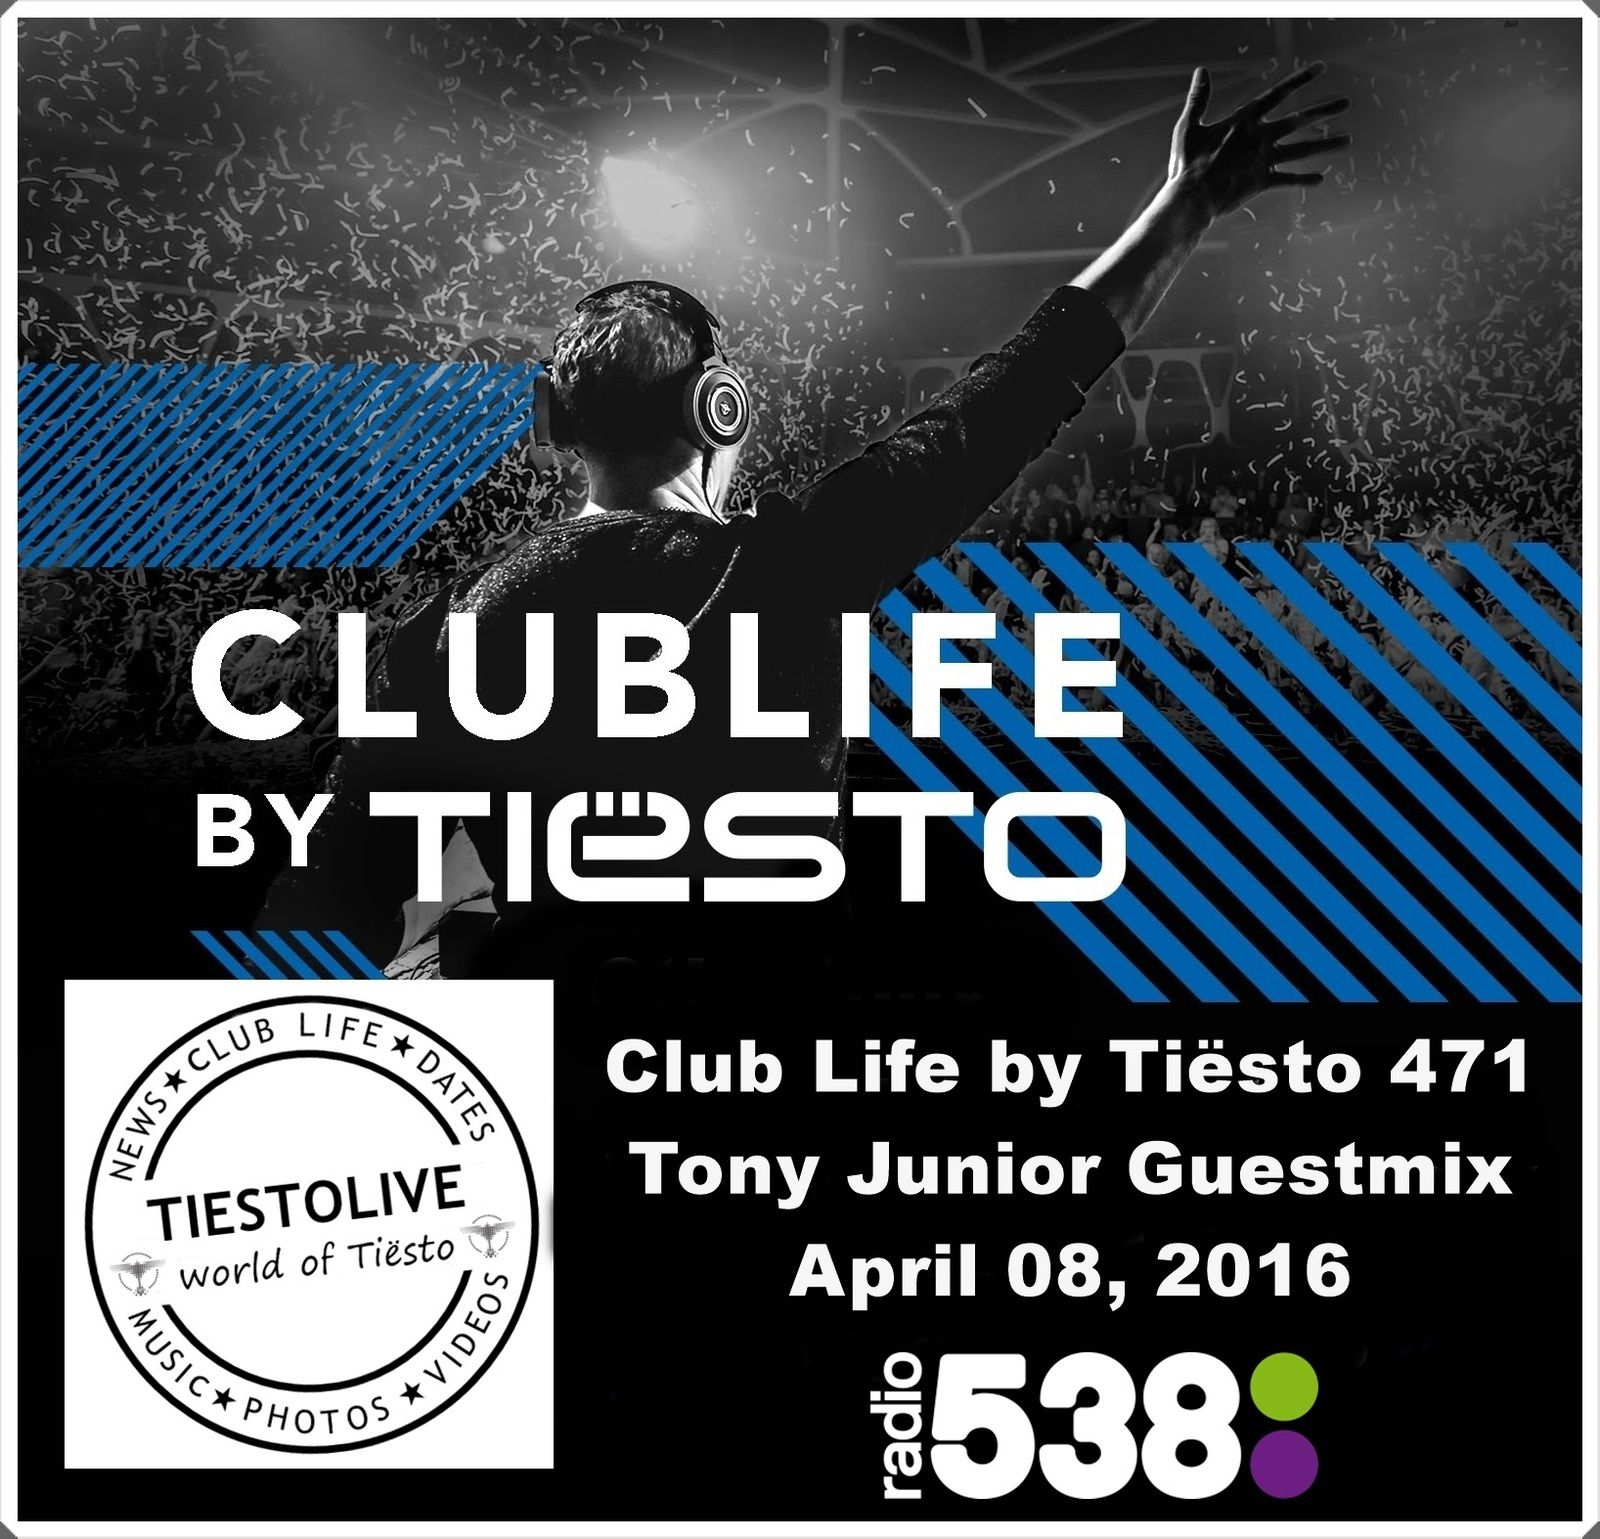 Club Life by Tiësto 471 - Tony Junior Guestmix - April 08, 2016